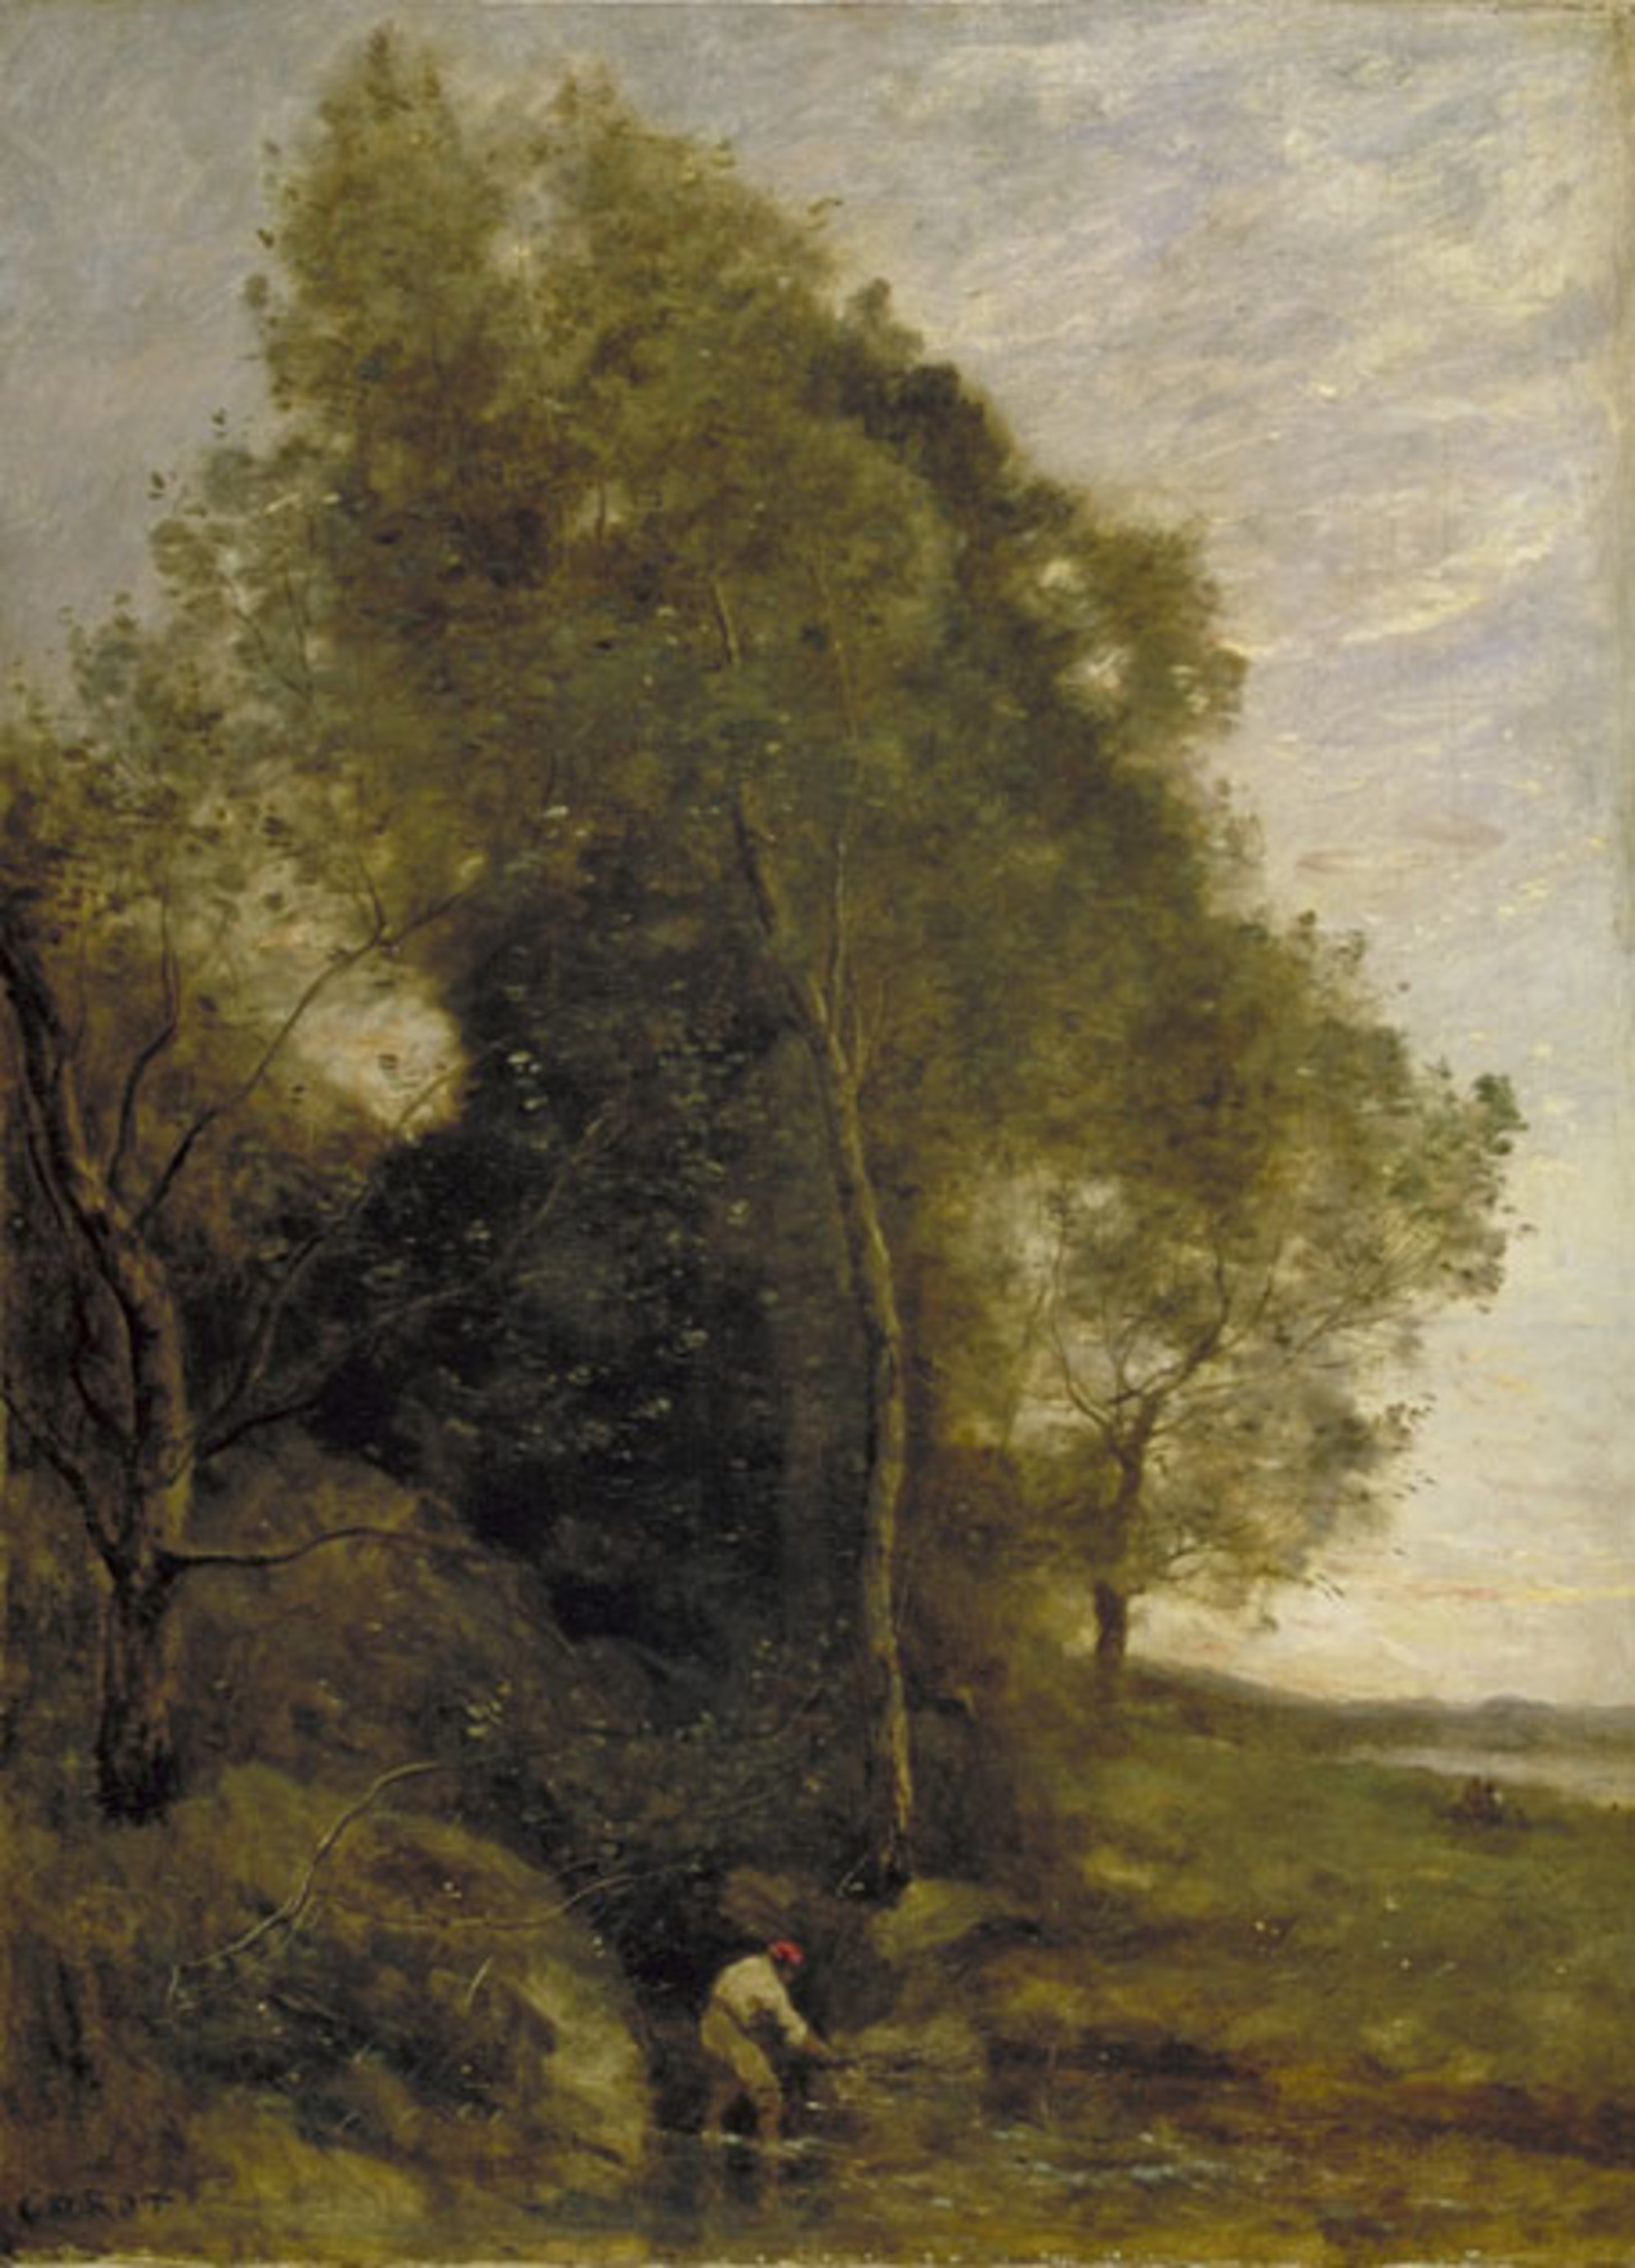 Corot---The-Crayfisher.jpg